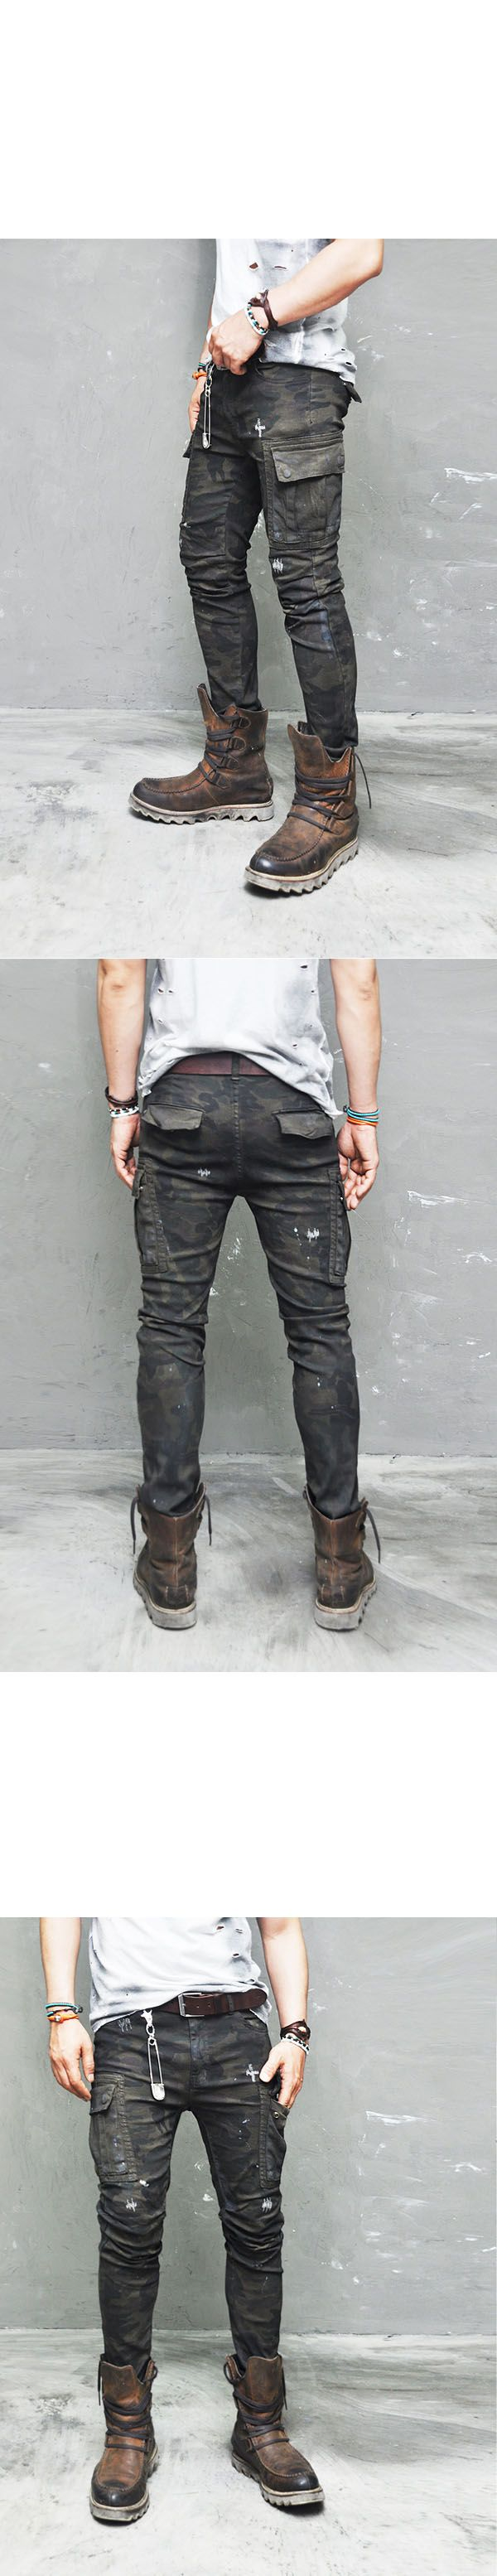 www.GUYLOOK.com     Get It Now                  REAL VINTAGE OIL WASH RUGGED CAMO CARGO PANTS-PANTS 130 BY GUYLOO...